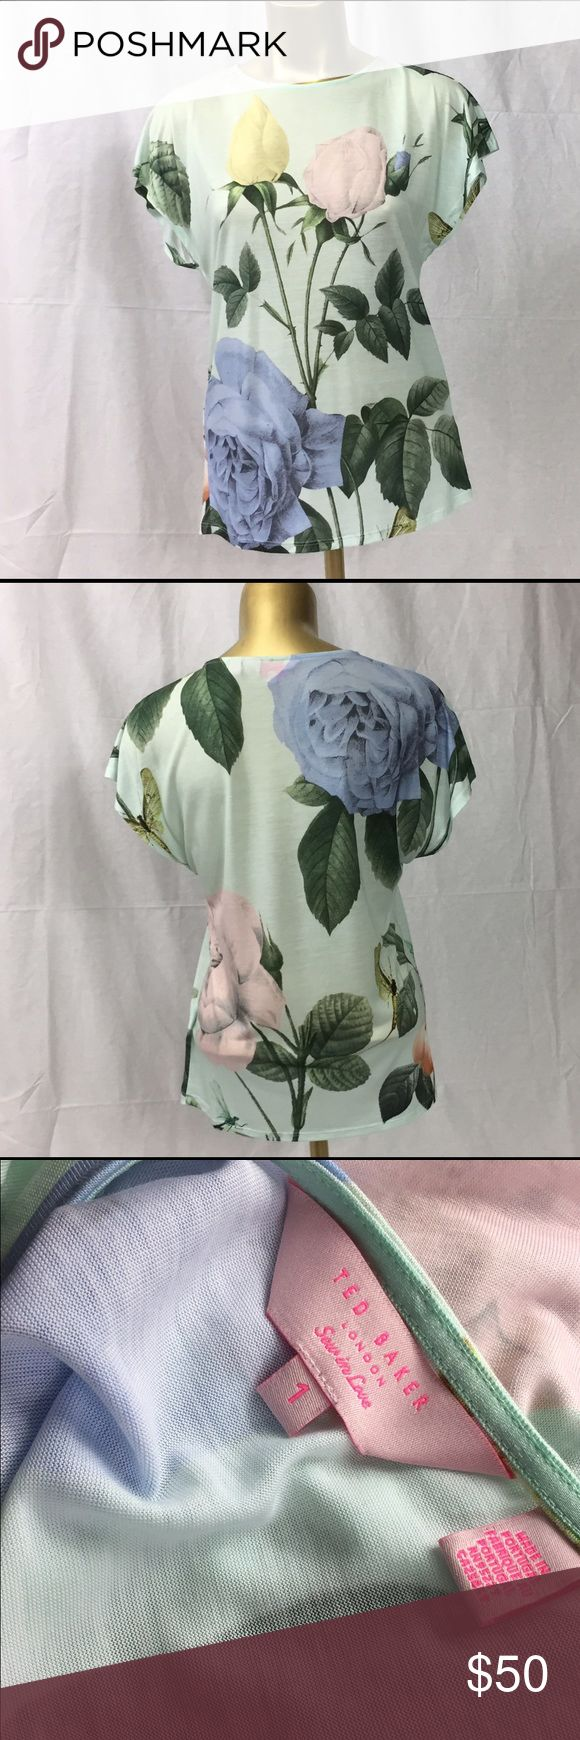 NWOT ted baker rose, mint green shirt Never worn, excellent condition( matching cardigan available) Ted Baker London Tops